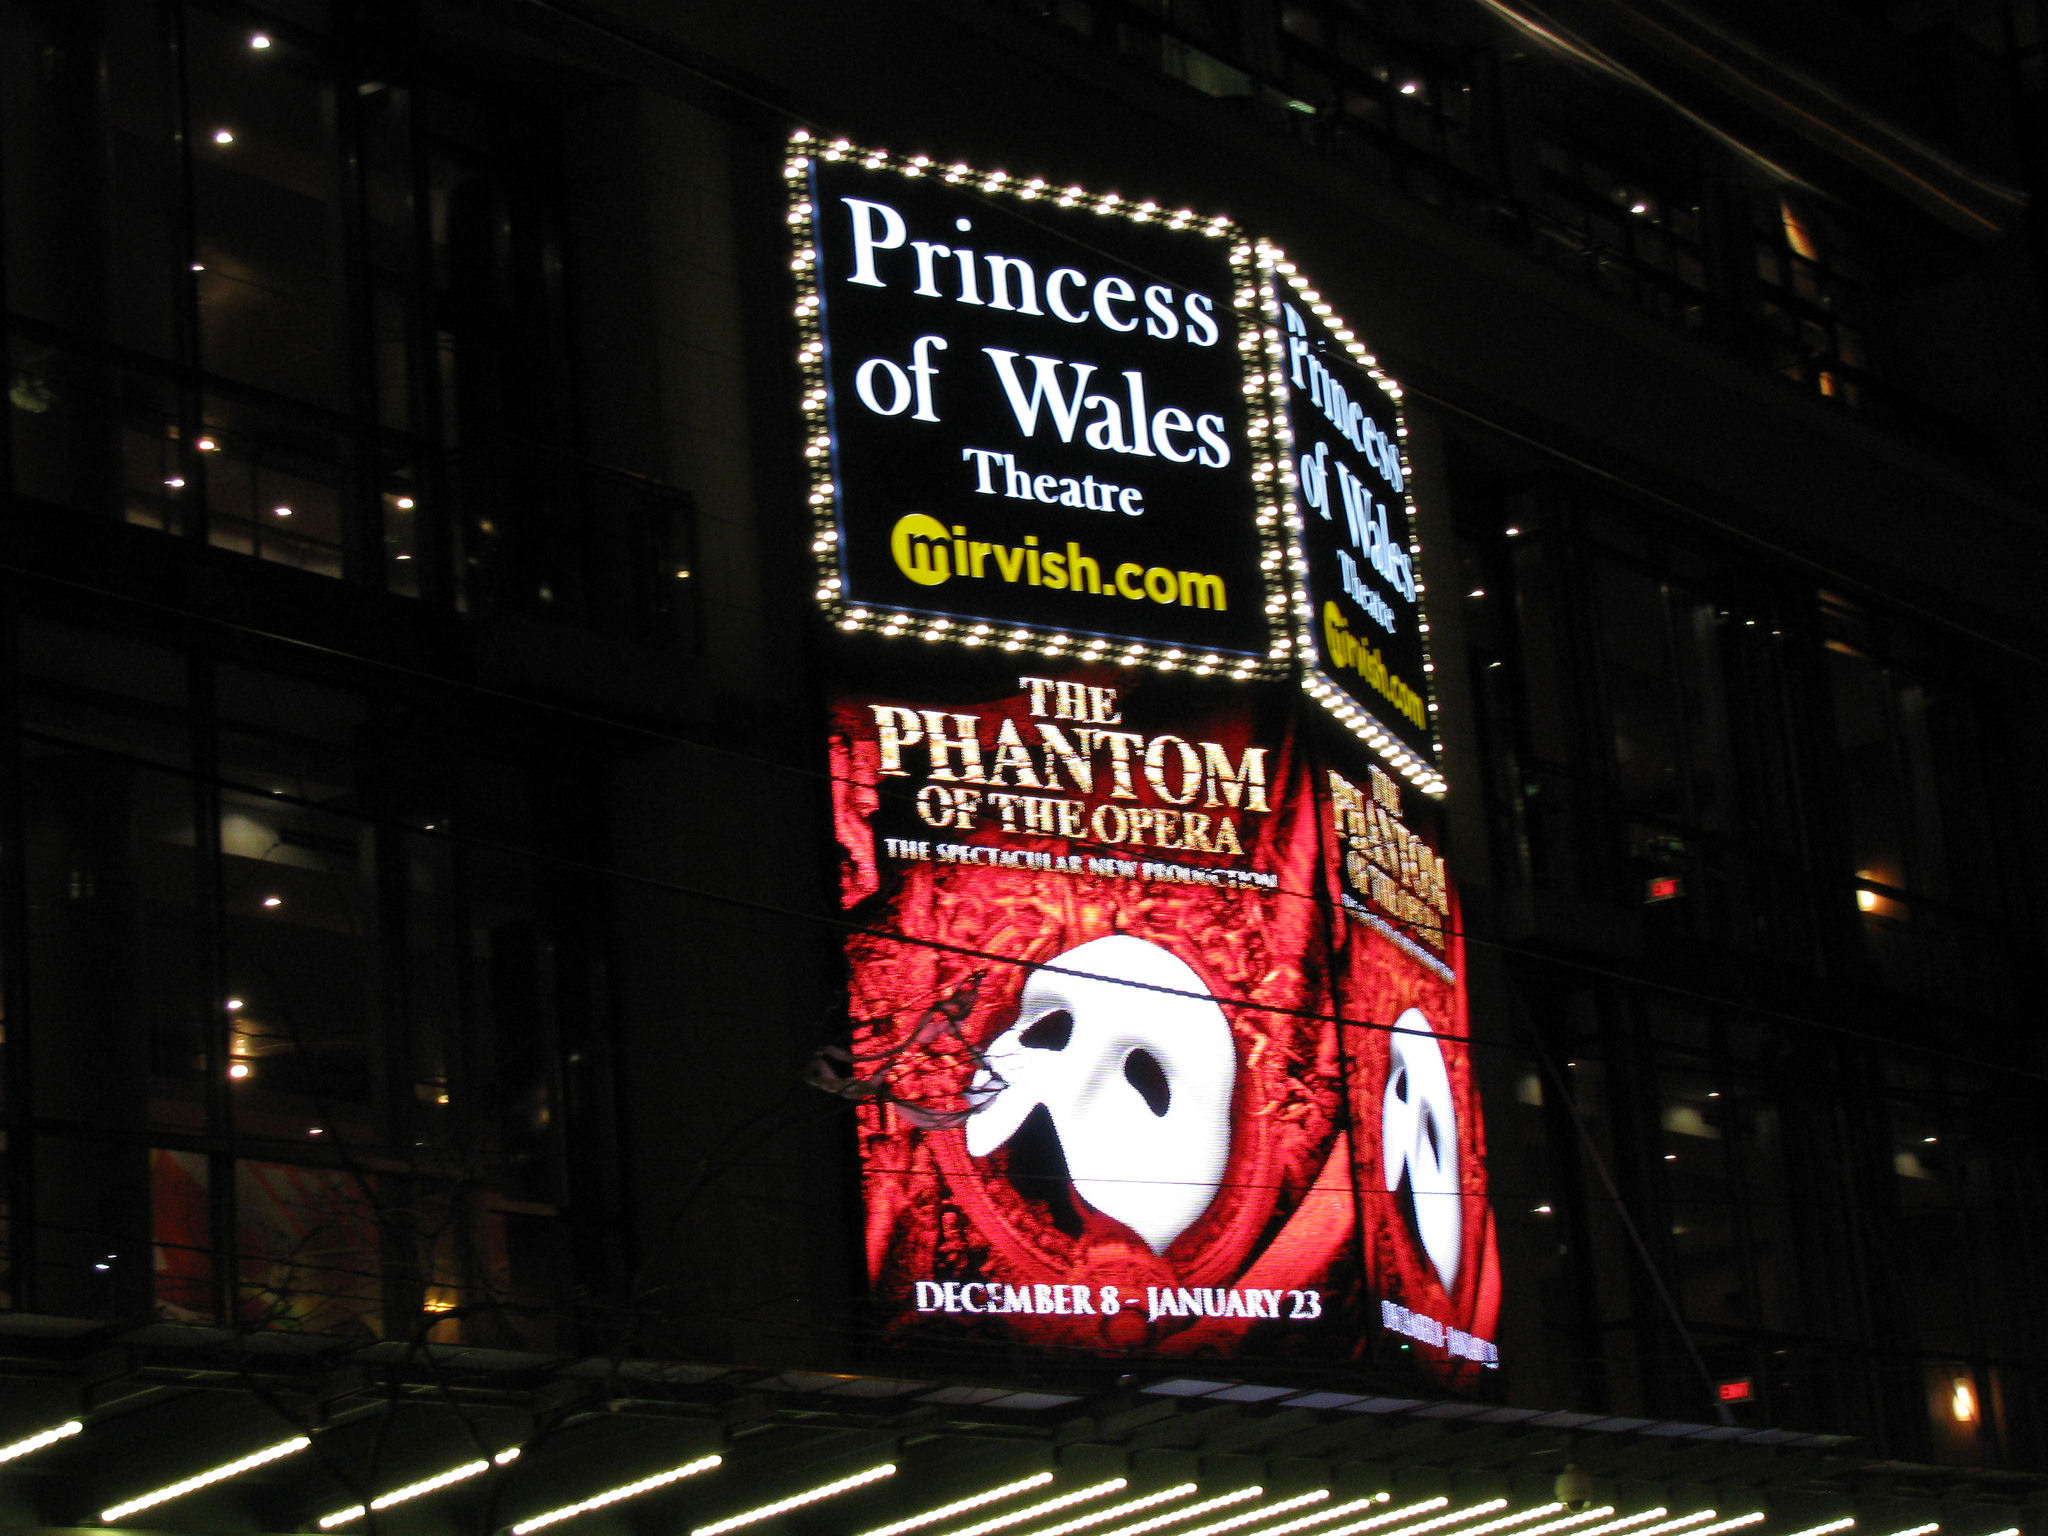 Princess of Wales Theatre showing Phantom of the Opera sign at night. And, first of all, also, another, furthermore, finally, in addition because, so, due to, while more. Consequently and therefore, in conclusion seems like, maybe, probably, almost most of all, most noteworthy, especially relevant.